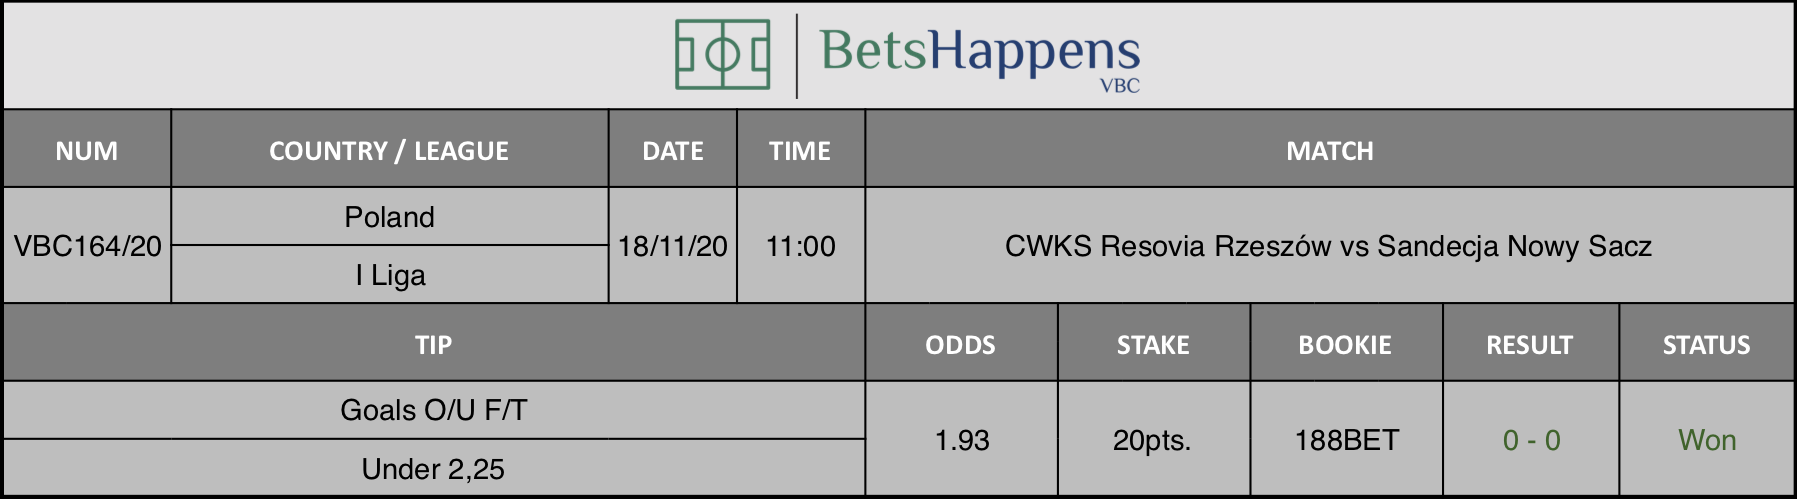 Results of our tip for the CWKS Resovia Rzeszów vs Sandecja Nowy Sacz match where Goals O/U F/T Under 2,25 is recommended.